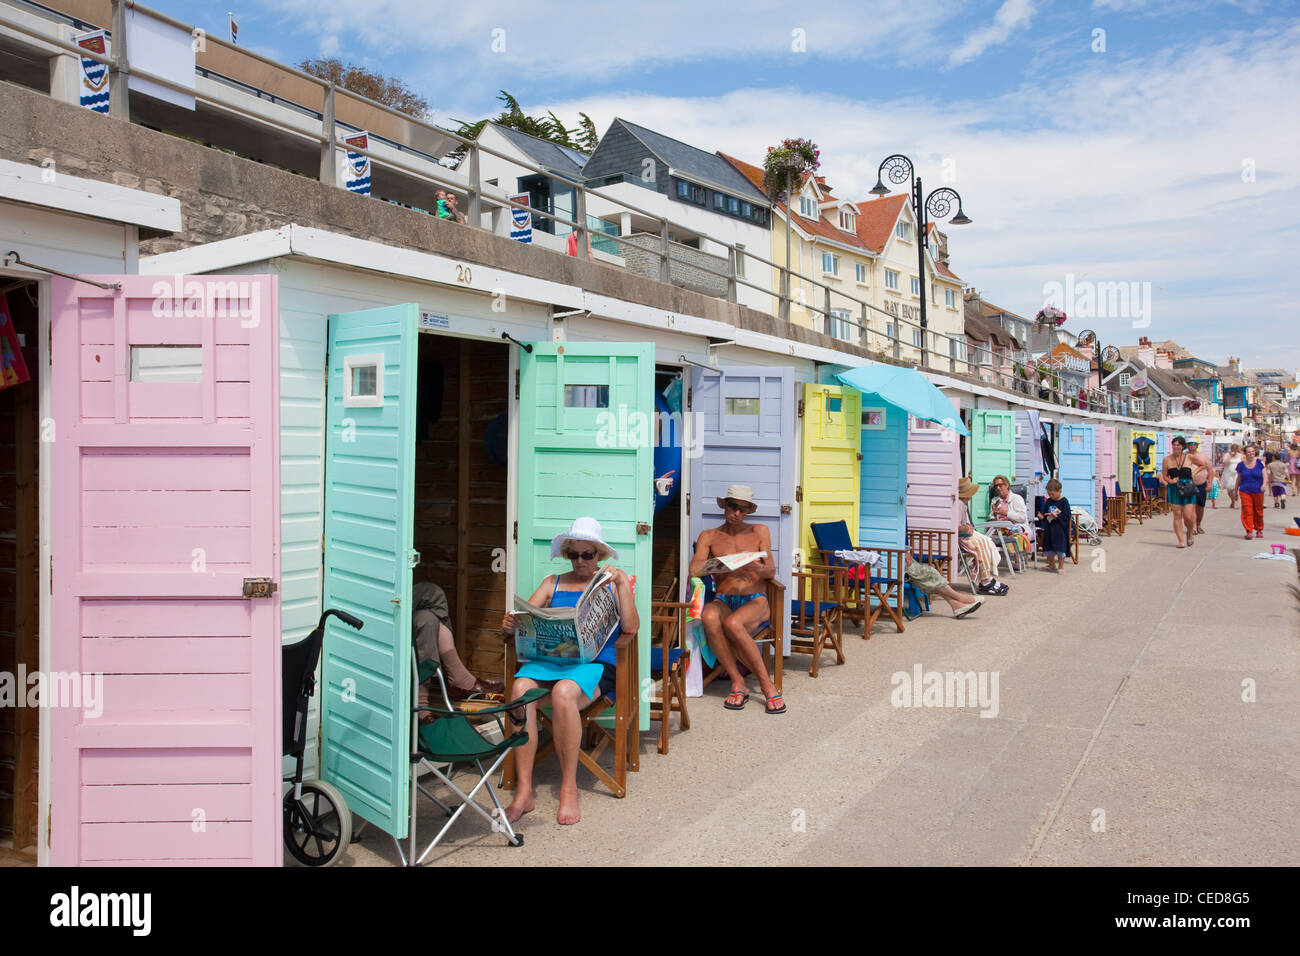 The Cobb Gate Fish Bar and The Rock Point Inn at Lyme Regis, Dorset, England. - Stock Image